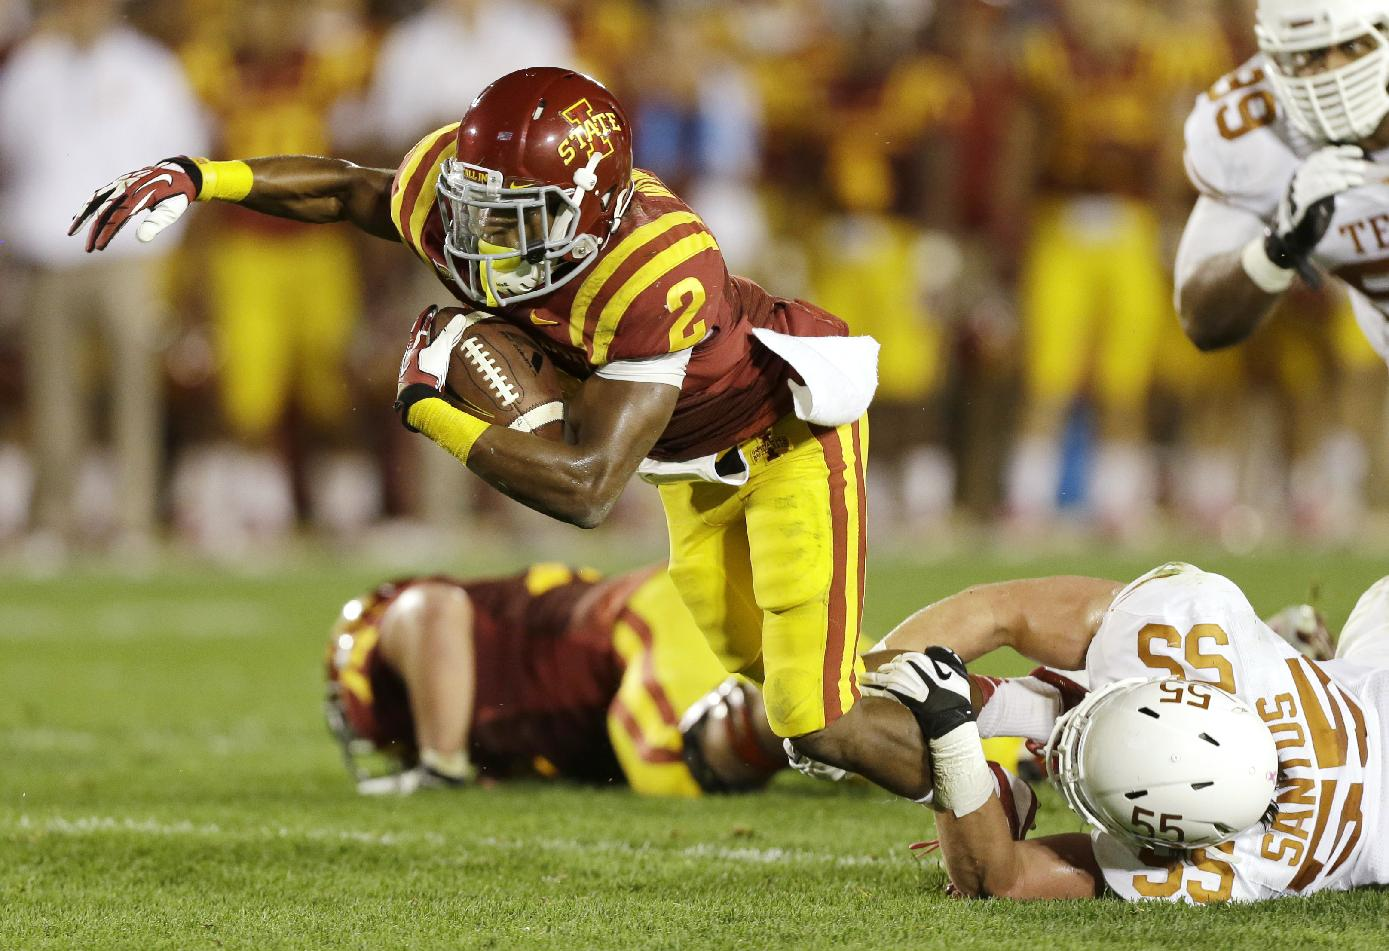 Iowa State running Aaron Wimberly (2) is tripped up by Texas linebacker Dalton Santos (55) during the first half of an NCAA college football game, Thursday, Oct. 3, 2013, in Ames, Iowa